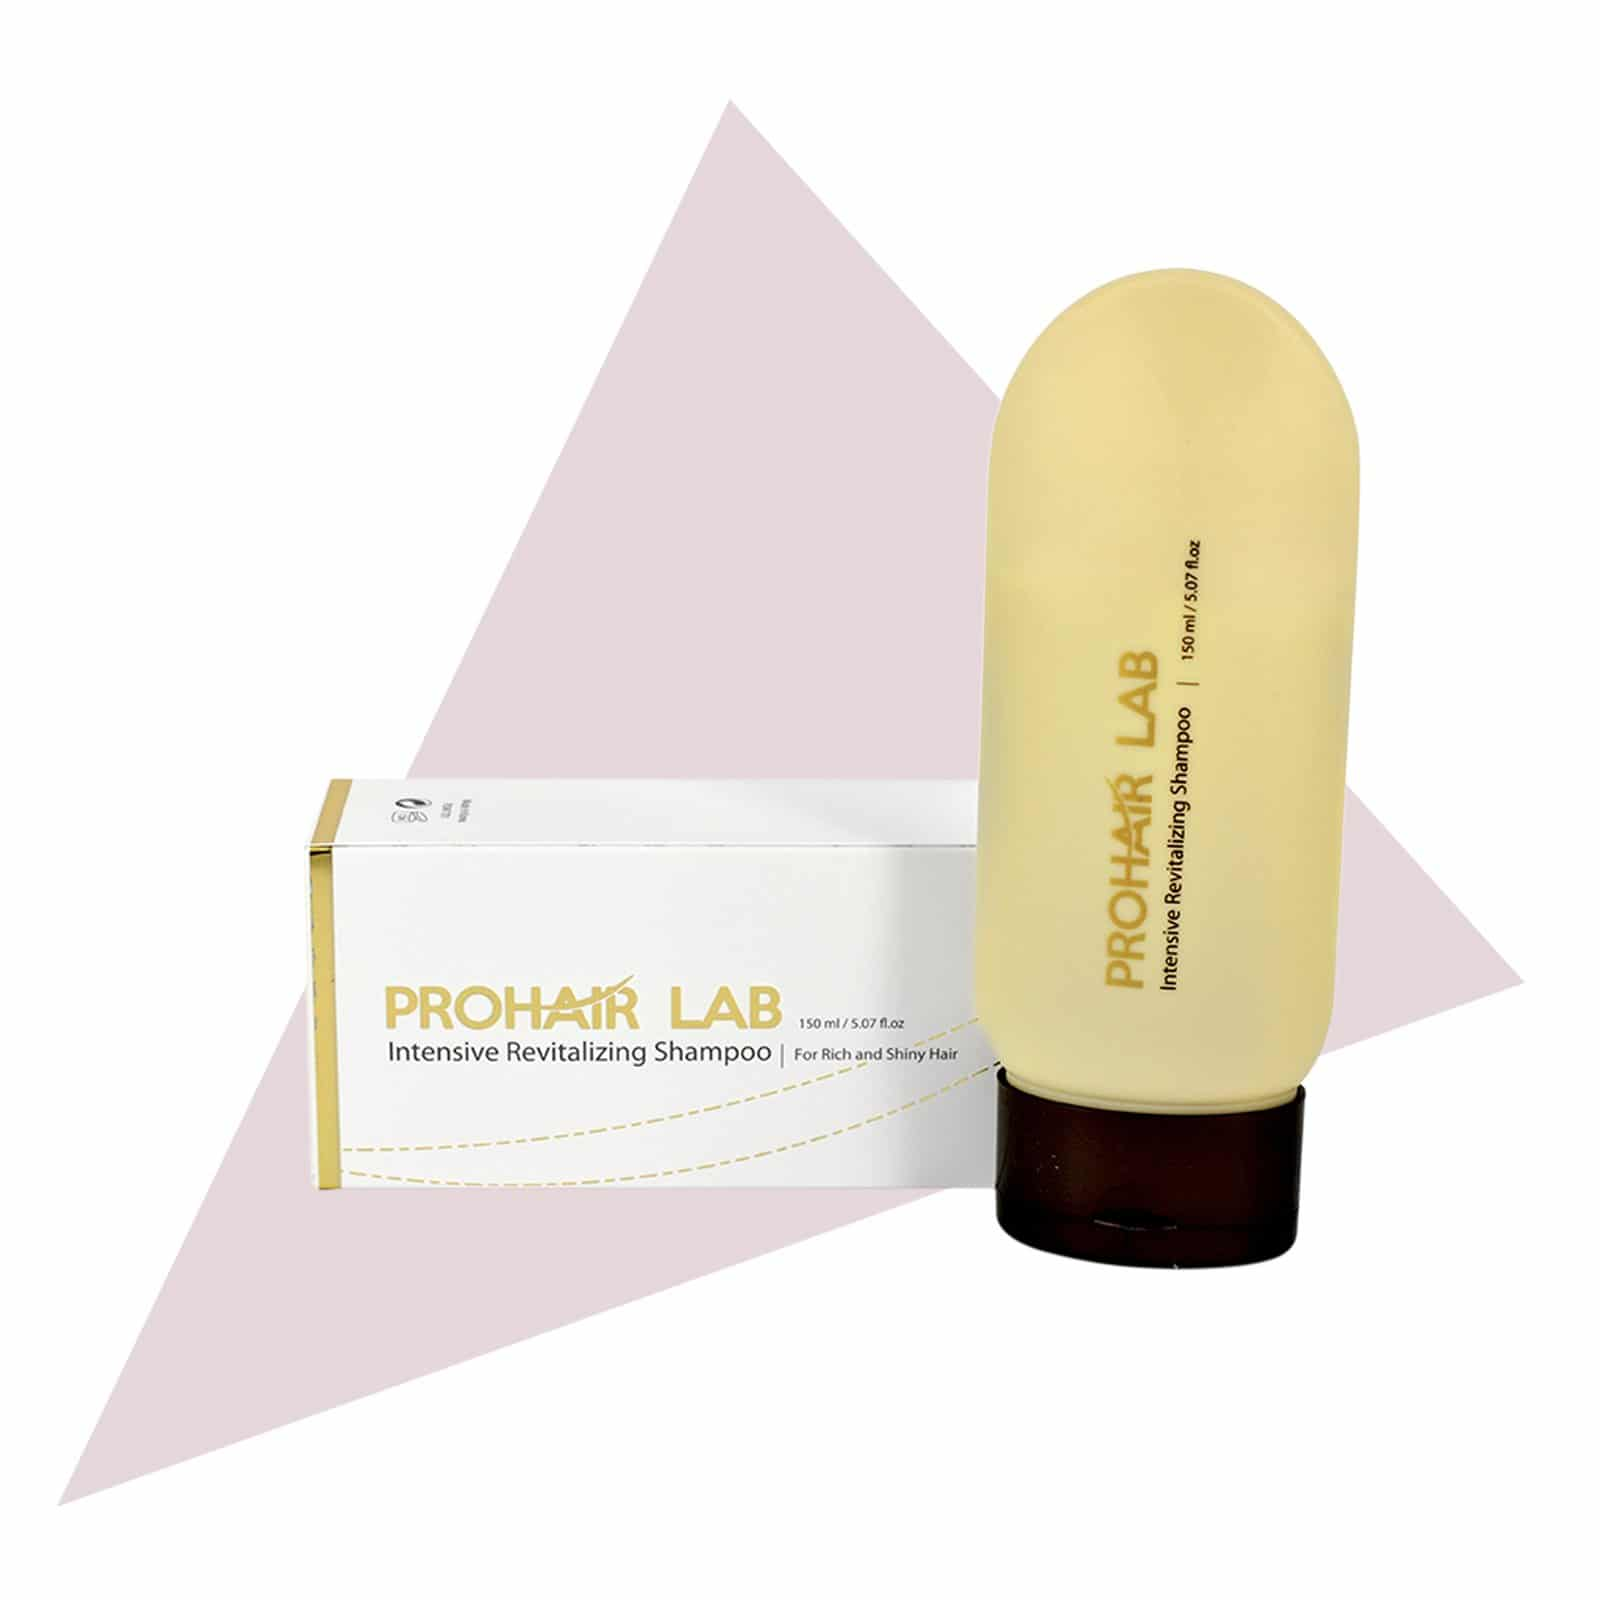 Prohair Lab Intensive Revitalizing Shampoo Default Title